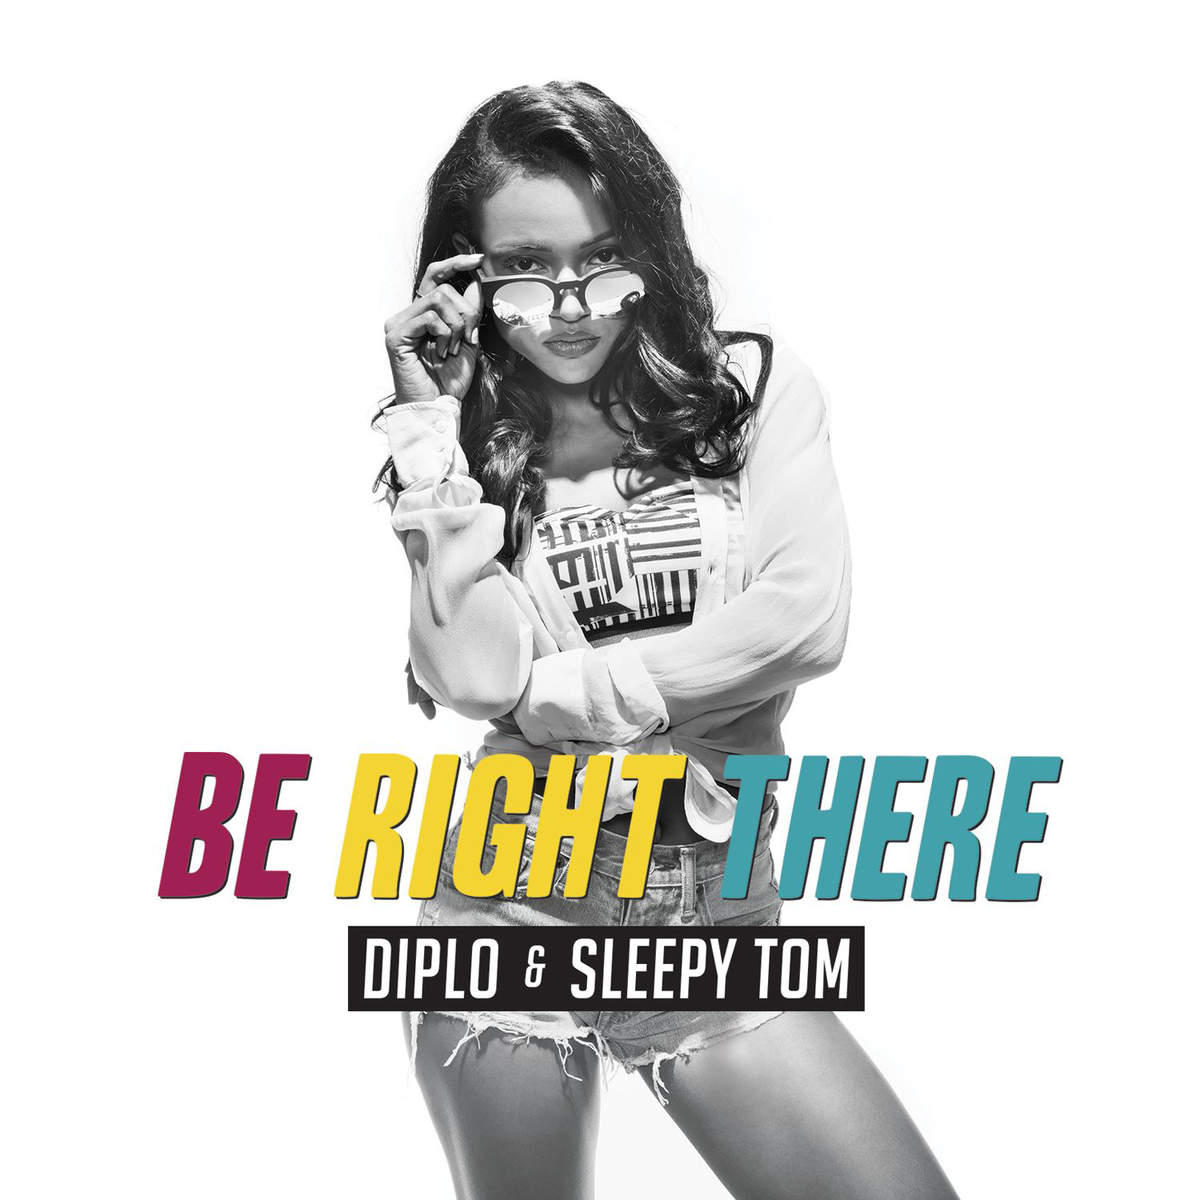 Diplo sleepy tom be right there 2015 1200x1200